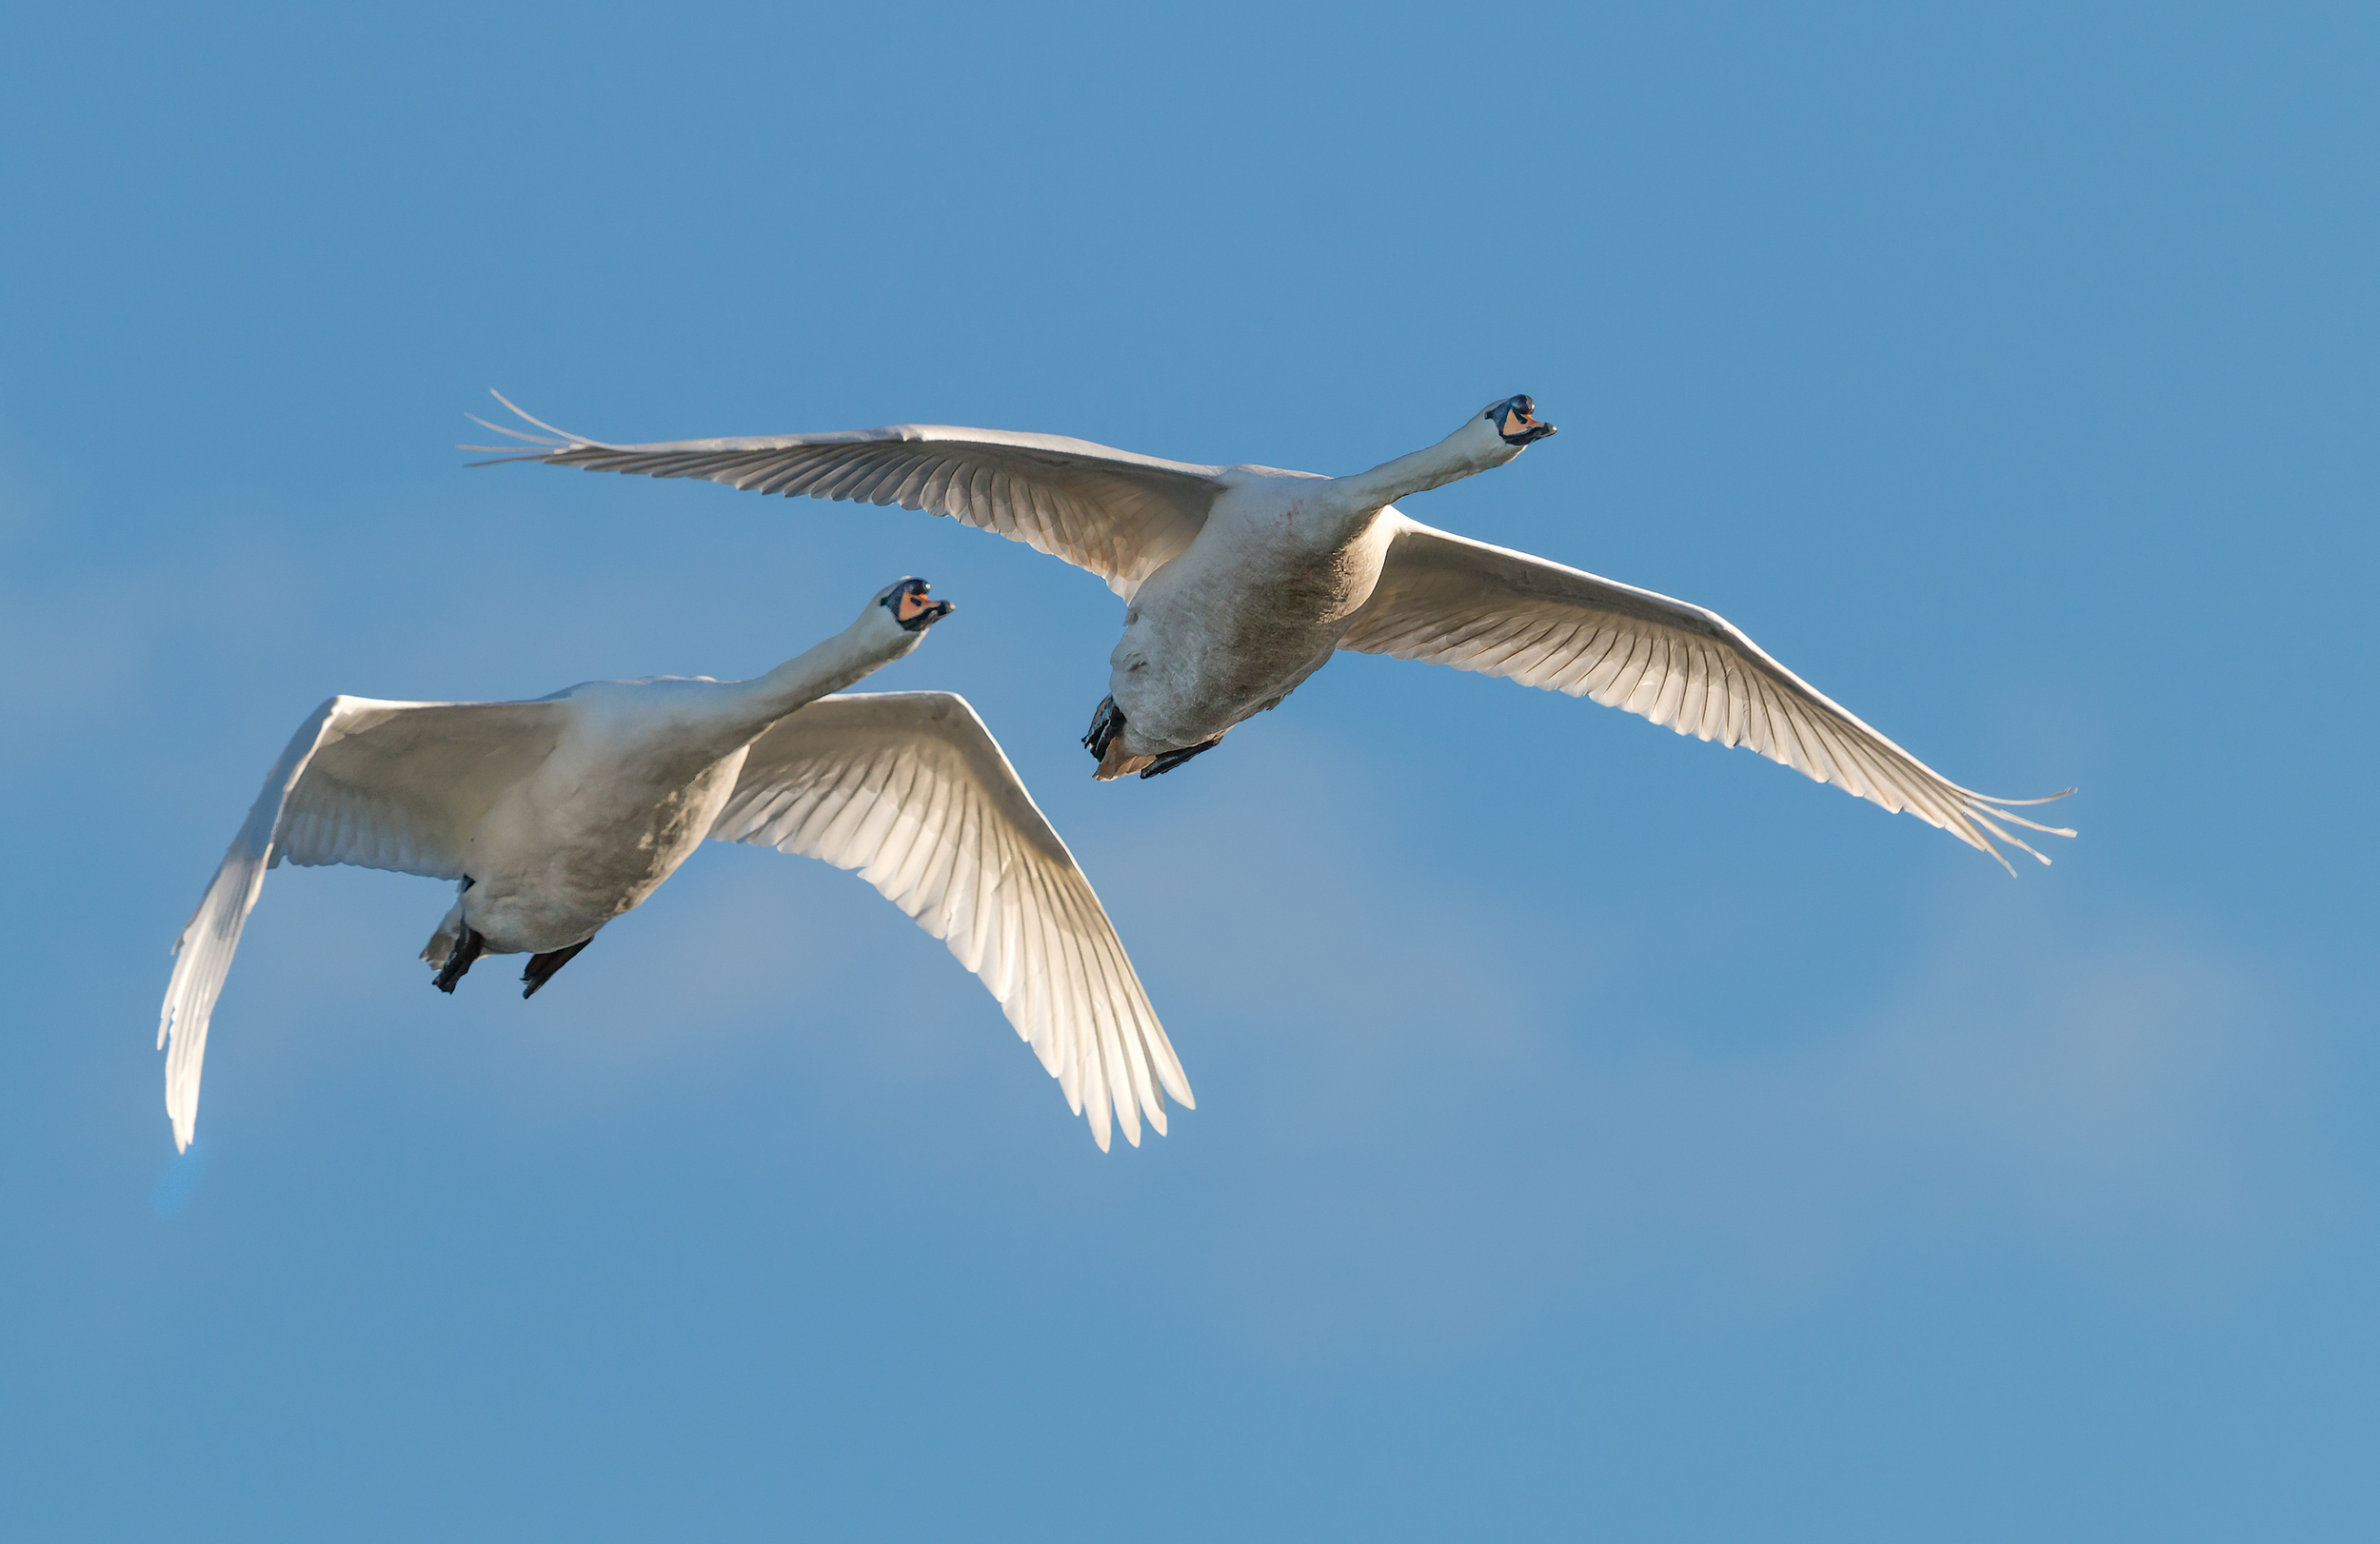 A pair of low flying Swans